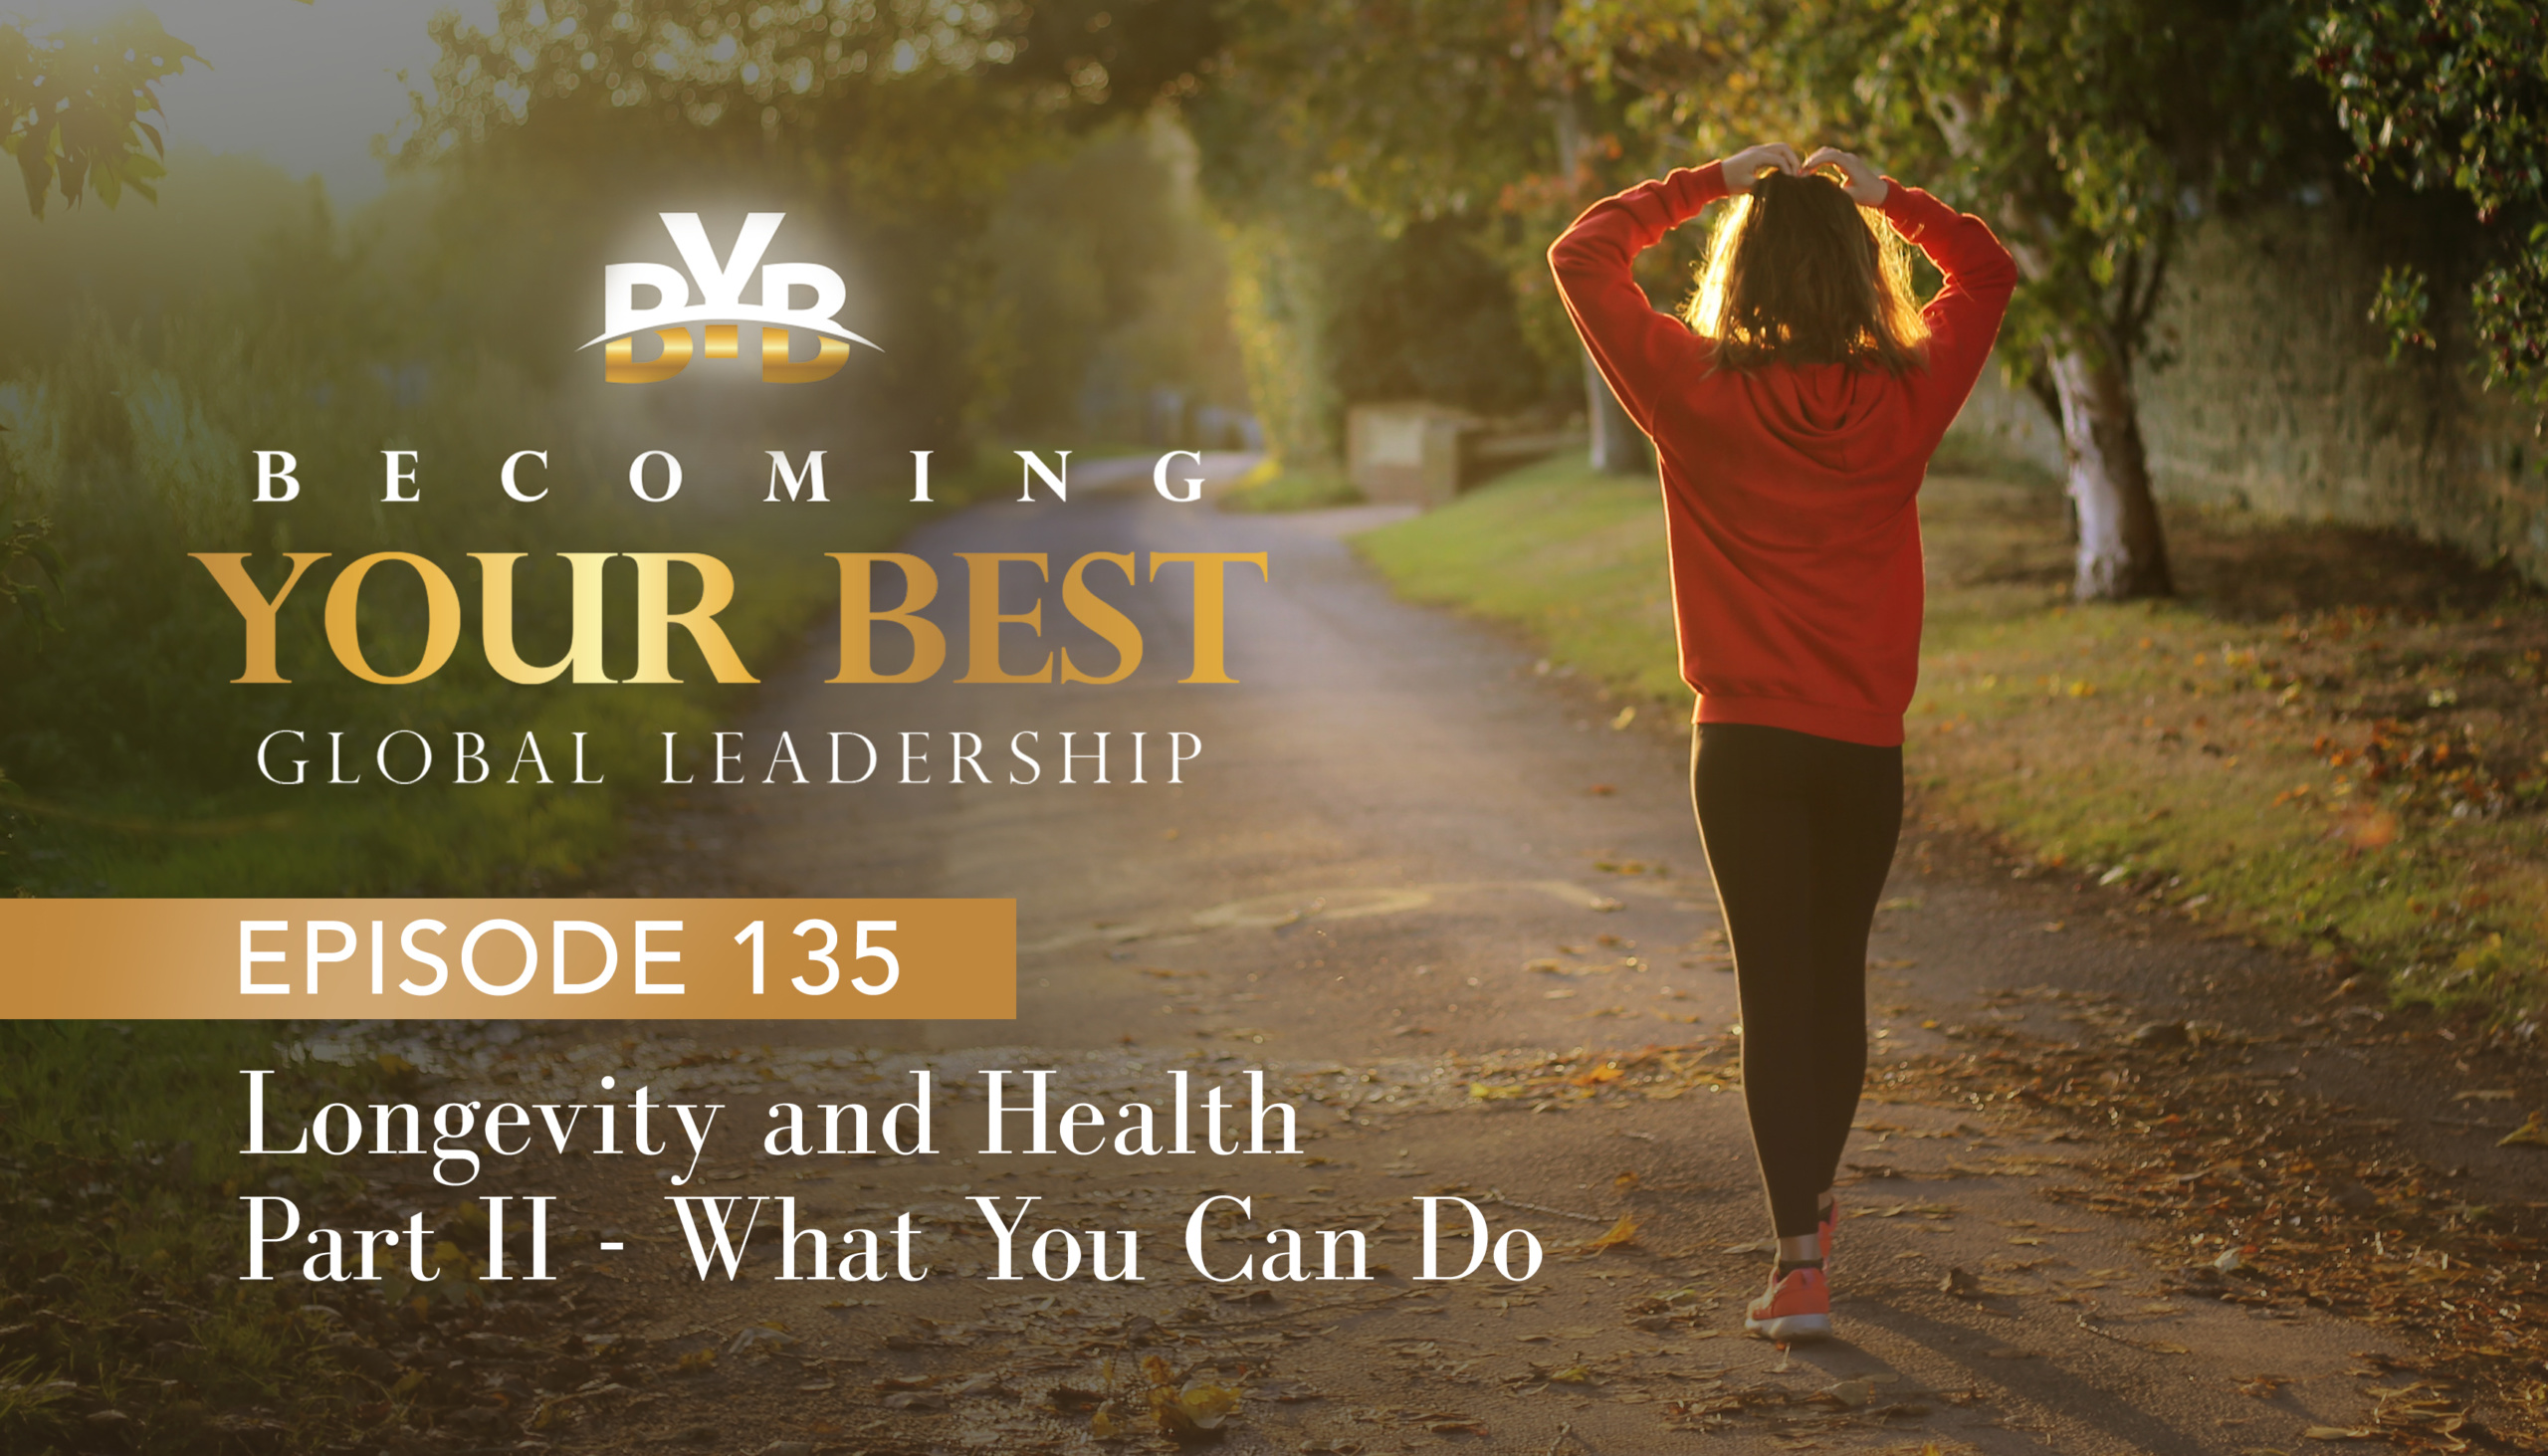 Ep. 135 – Longevity and Health Part II : What You Can Do